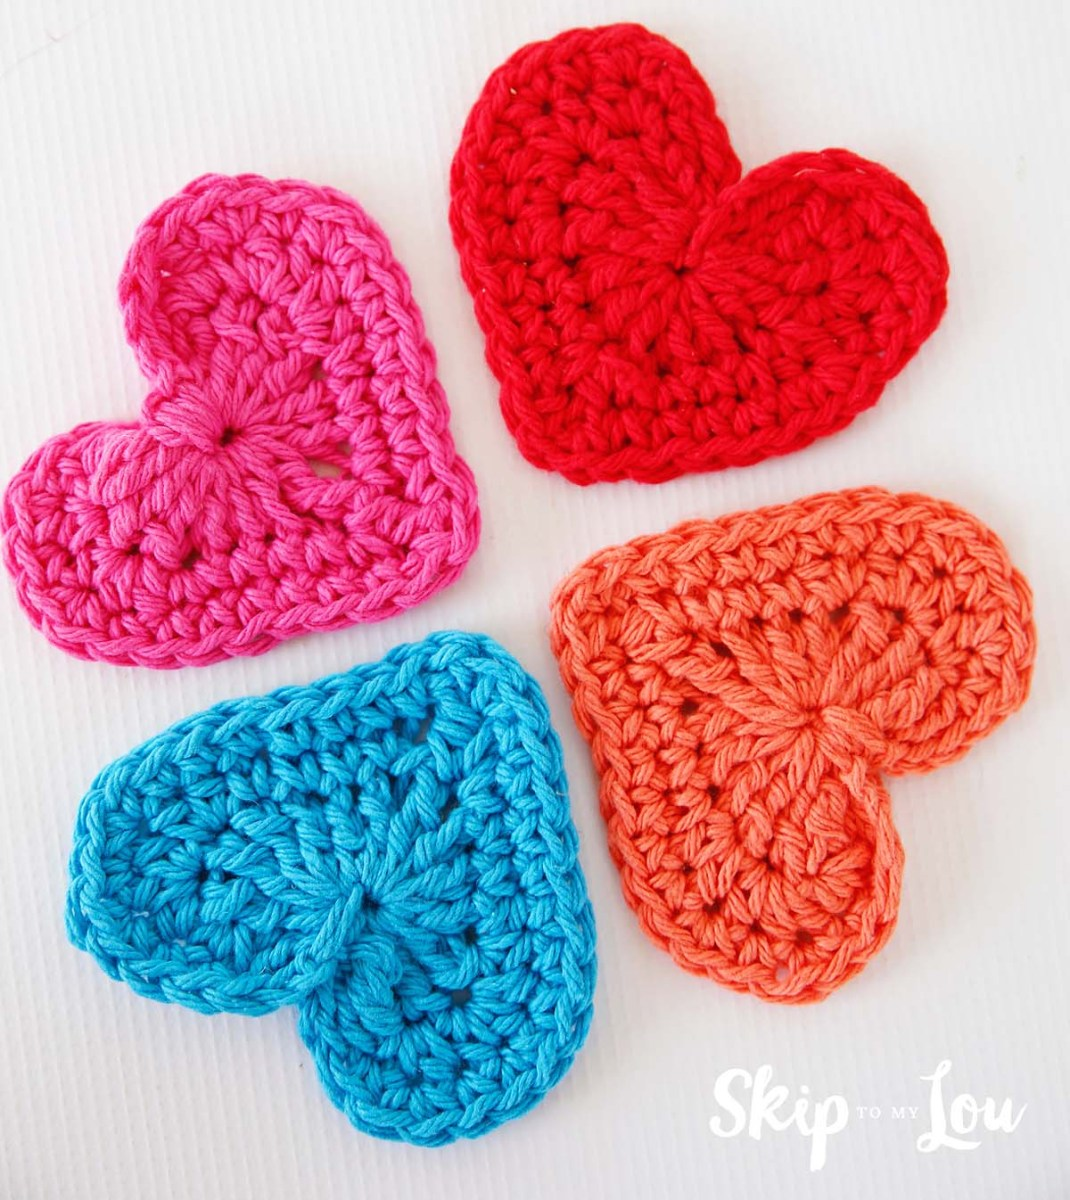 Simple Crochet Rose Pattern Easy Crochet Heart Garland Pattern Skip To My Lou